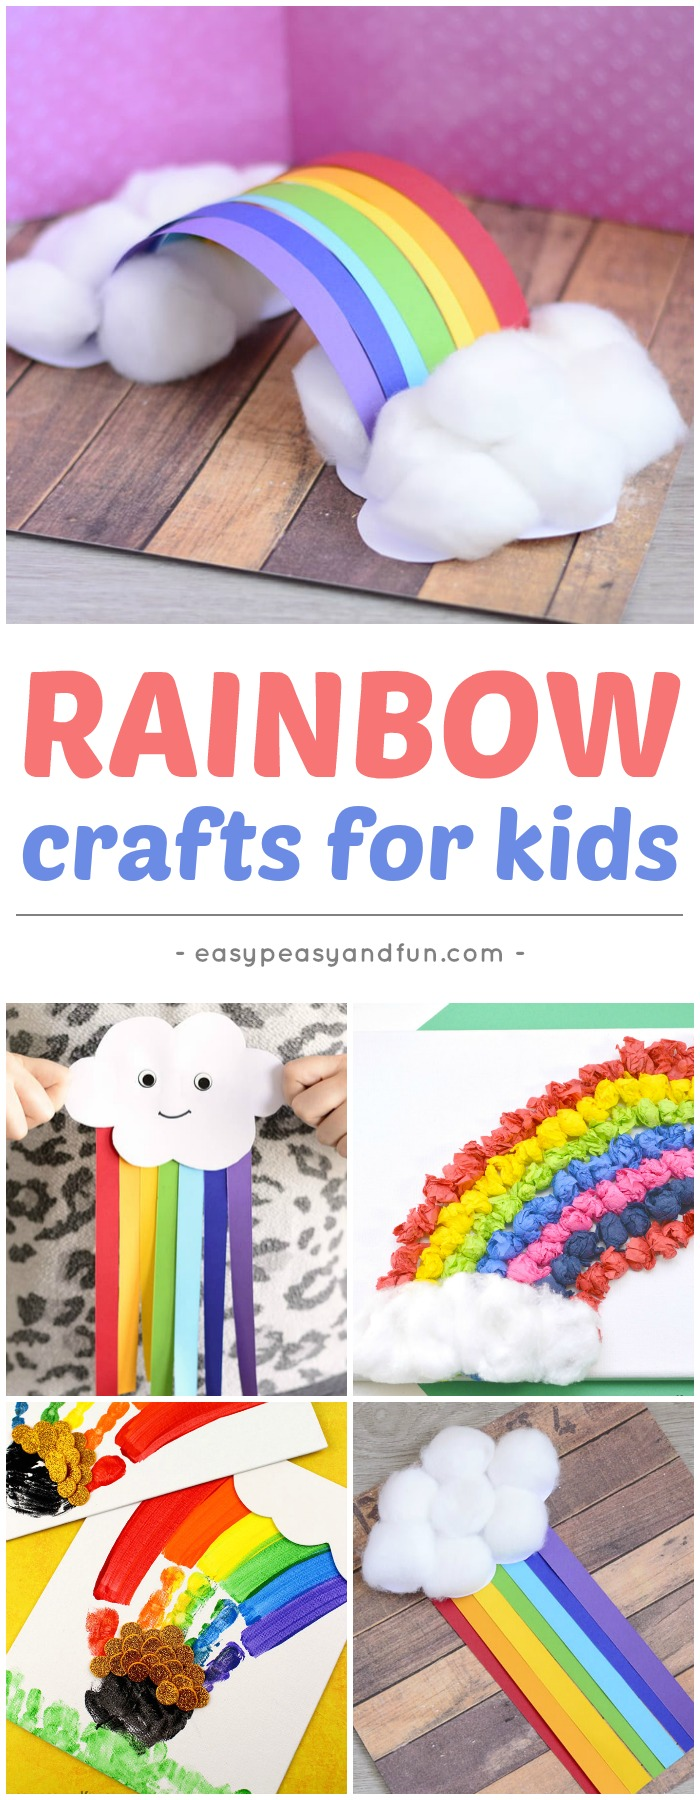 Rainbow Crafts for Kids #rainbowcrafts #Springcrafts #craftsforkids